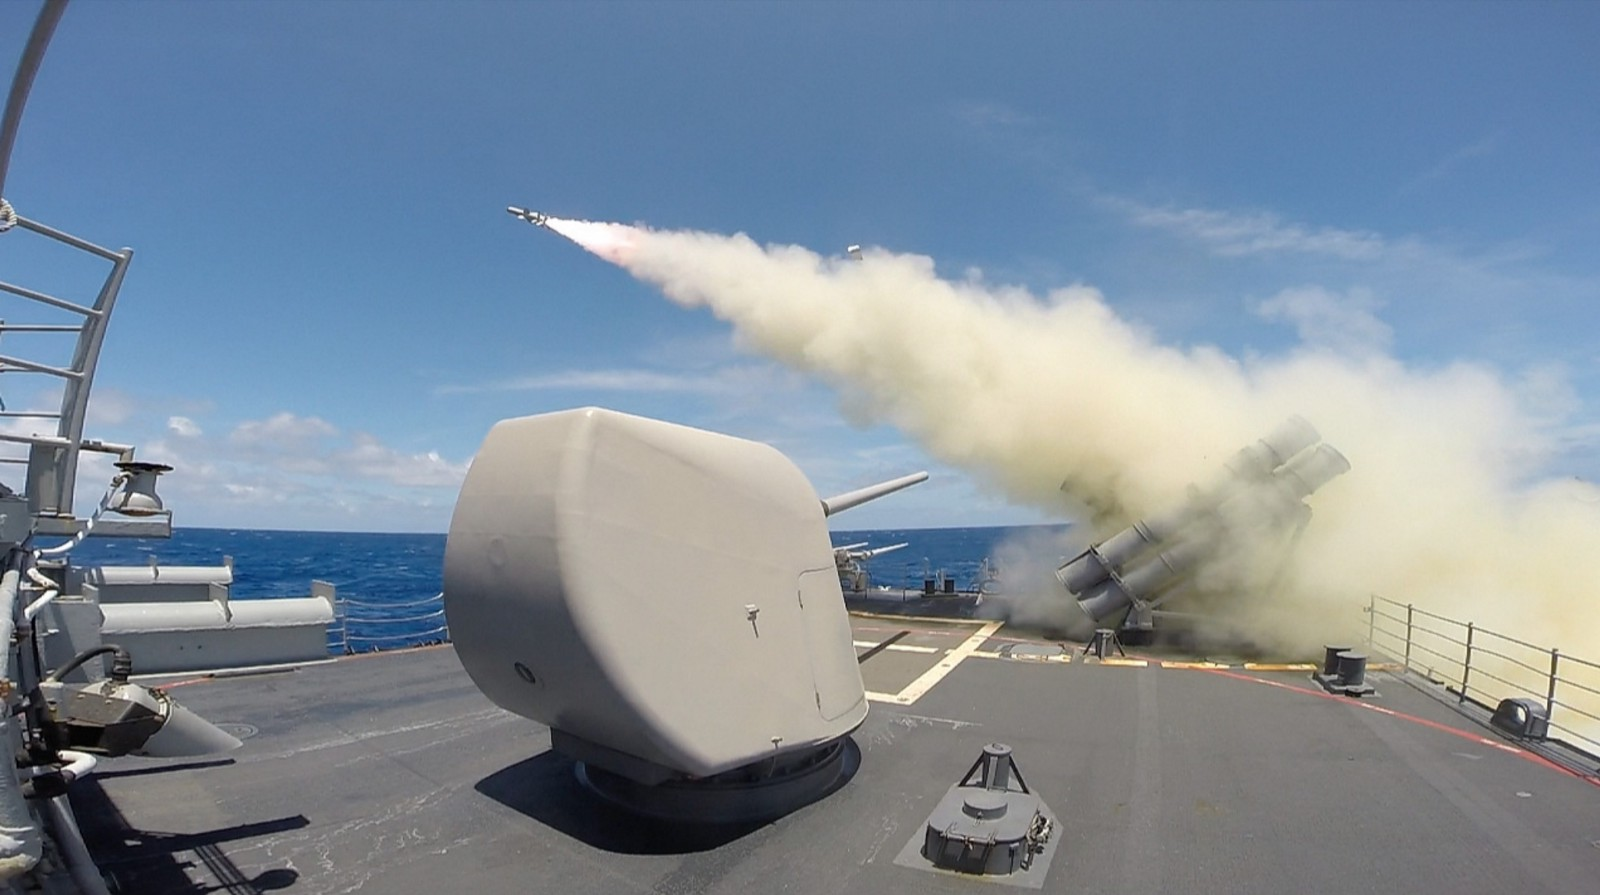 The Ticonderoga-class guided-missile cruiser USS Chosin (CG-65) launches a Harpoon missile during a live-fire exercise as part of Rim of the Pacific (RIMPAC) Exercise 2014. Twenty-two nations, 49 ships, six submarines, more than 200 aircraft and 25,000 personnel are participating in RIMPAC from June 26 to Aug. 1 in and around the Hawaiian Islands and Southern California. The world's largest international maritime exercise, RIMPAC provides a unique training opportunity that helps participants foster and sustain the cooperative relationships that are critical to ensuring the safety of sea lanes and security on the world's oceans. RIMPAC 2014 is the 24th exercise in the series that began in 1971. (U.S. Navy photo by Fire Controlman 2nd Class Andrew Albin/Released)